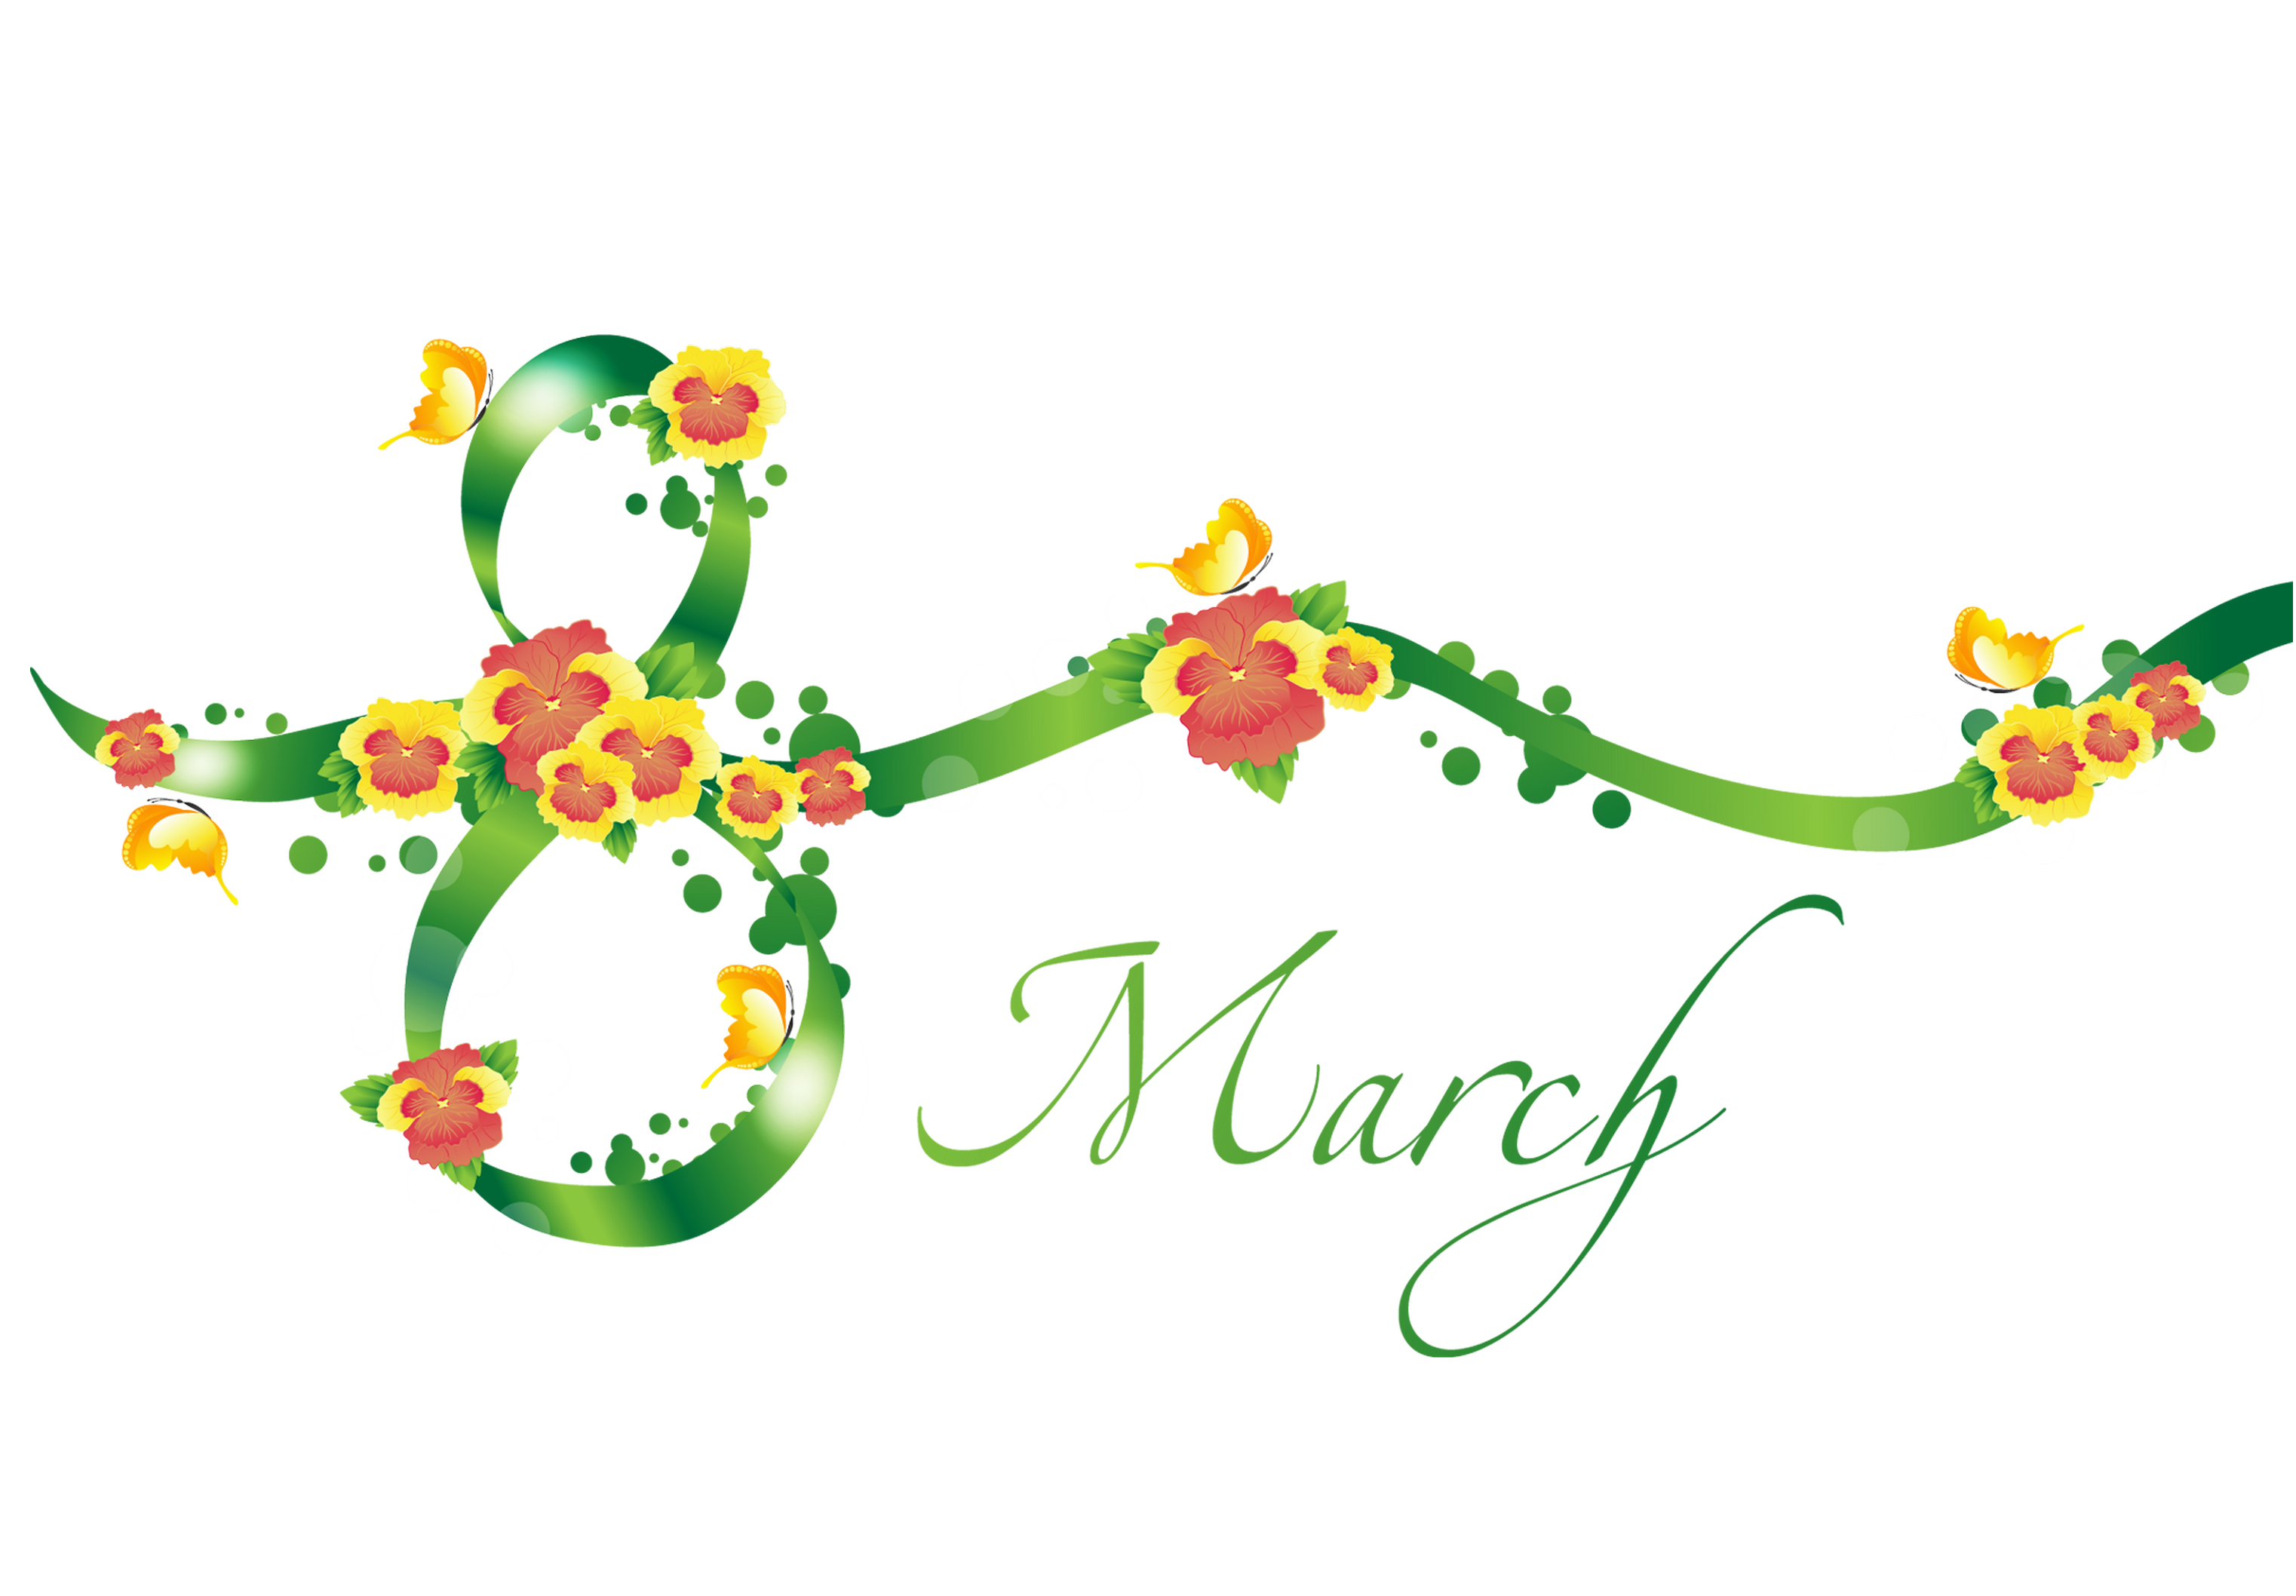 march clipart-march clipart-7